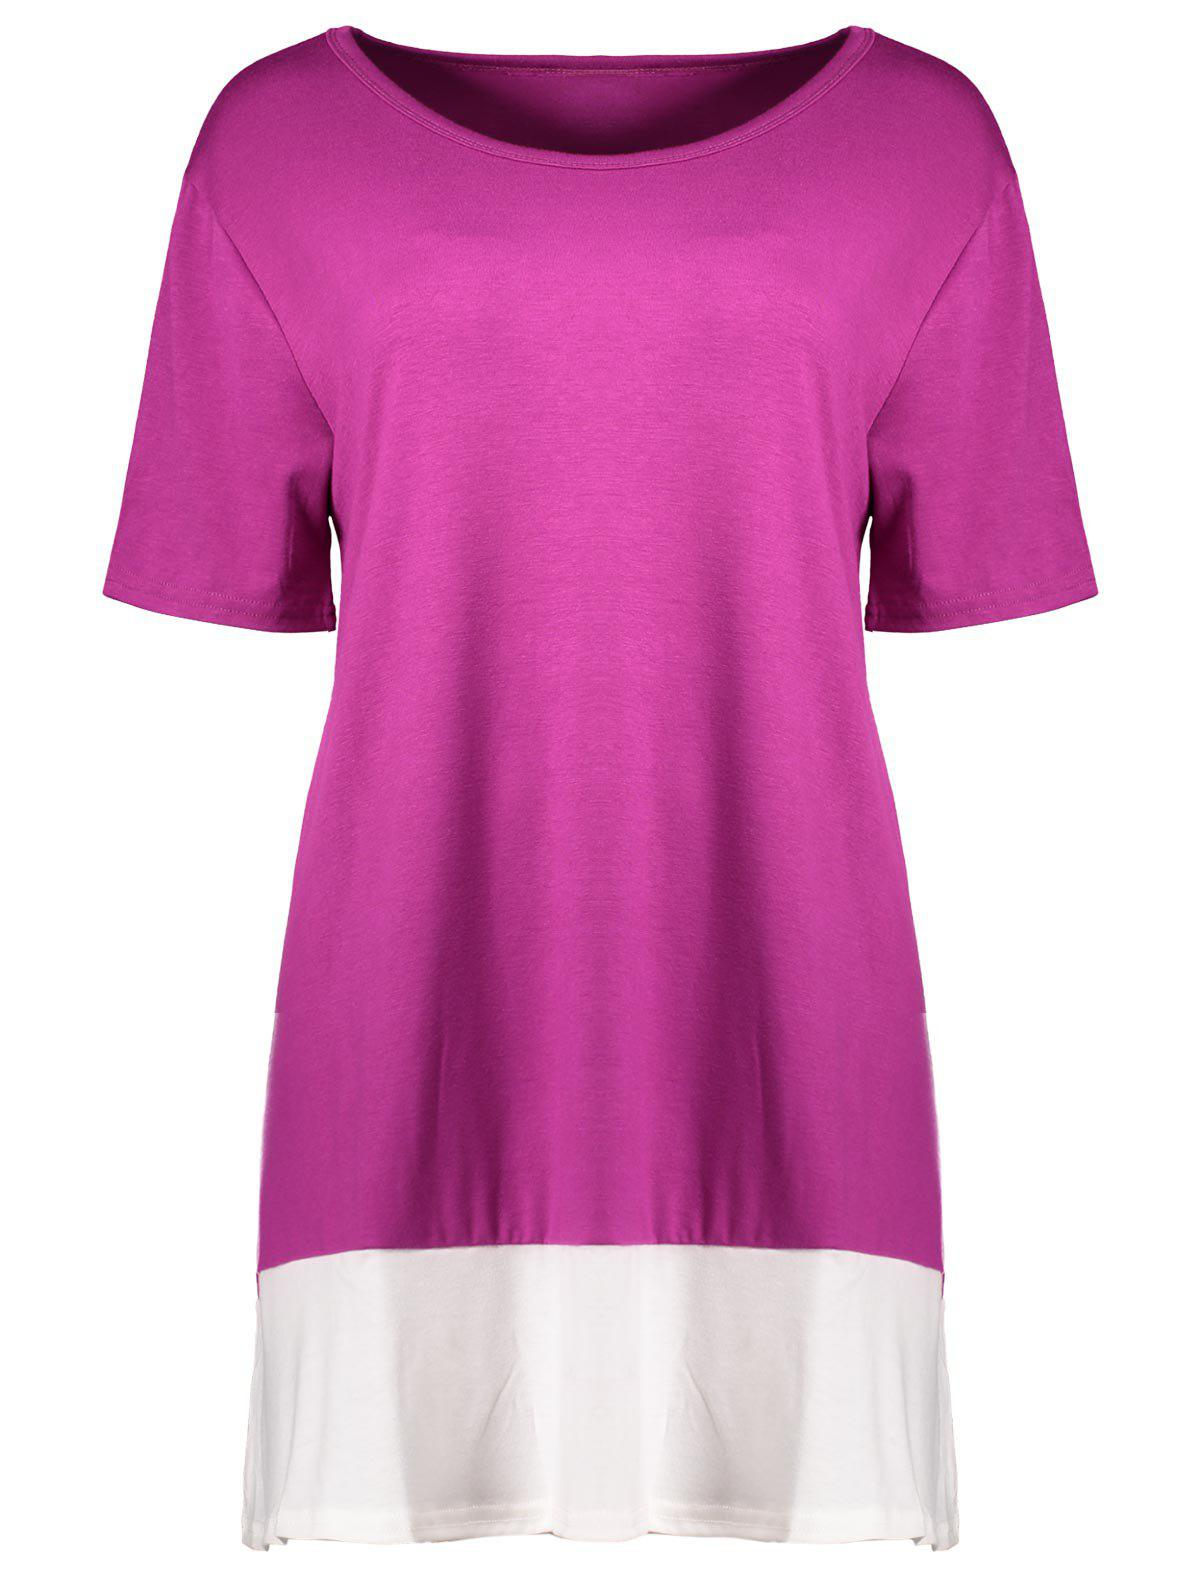 2018 Plus Size Colorblock Mini A Line T Shirt Dress Rose Red Xl In